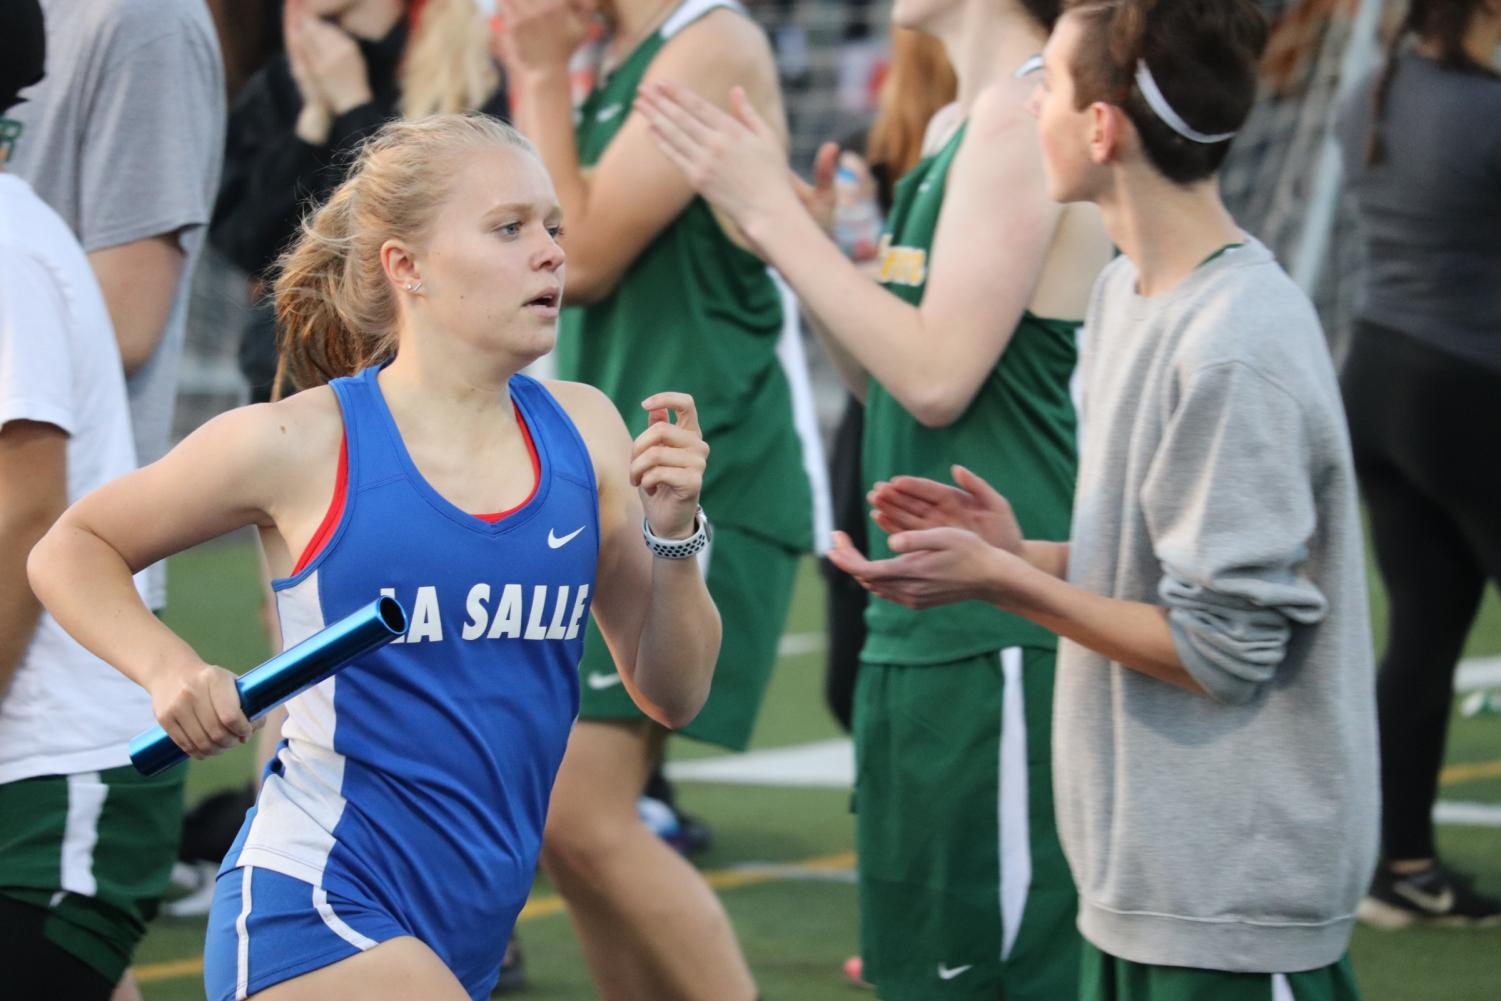 Junior Evelyn Bergler is cheered on by the rest of the team as she comes around the corner for the last straightaway of the 4x400 relay.